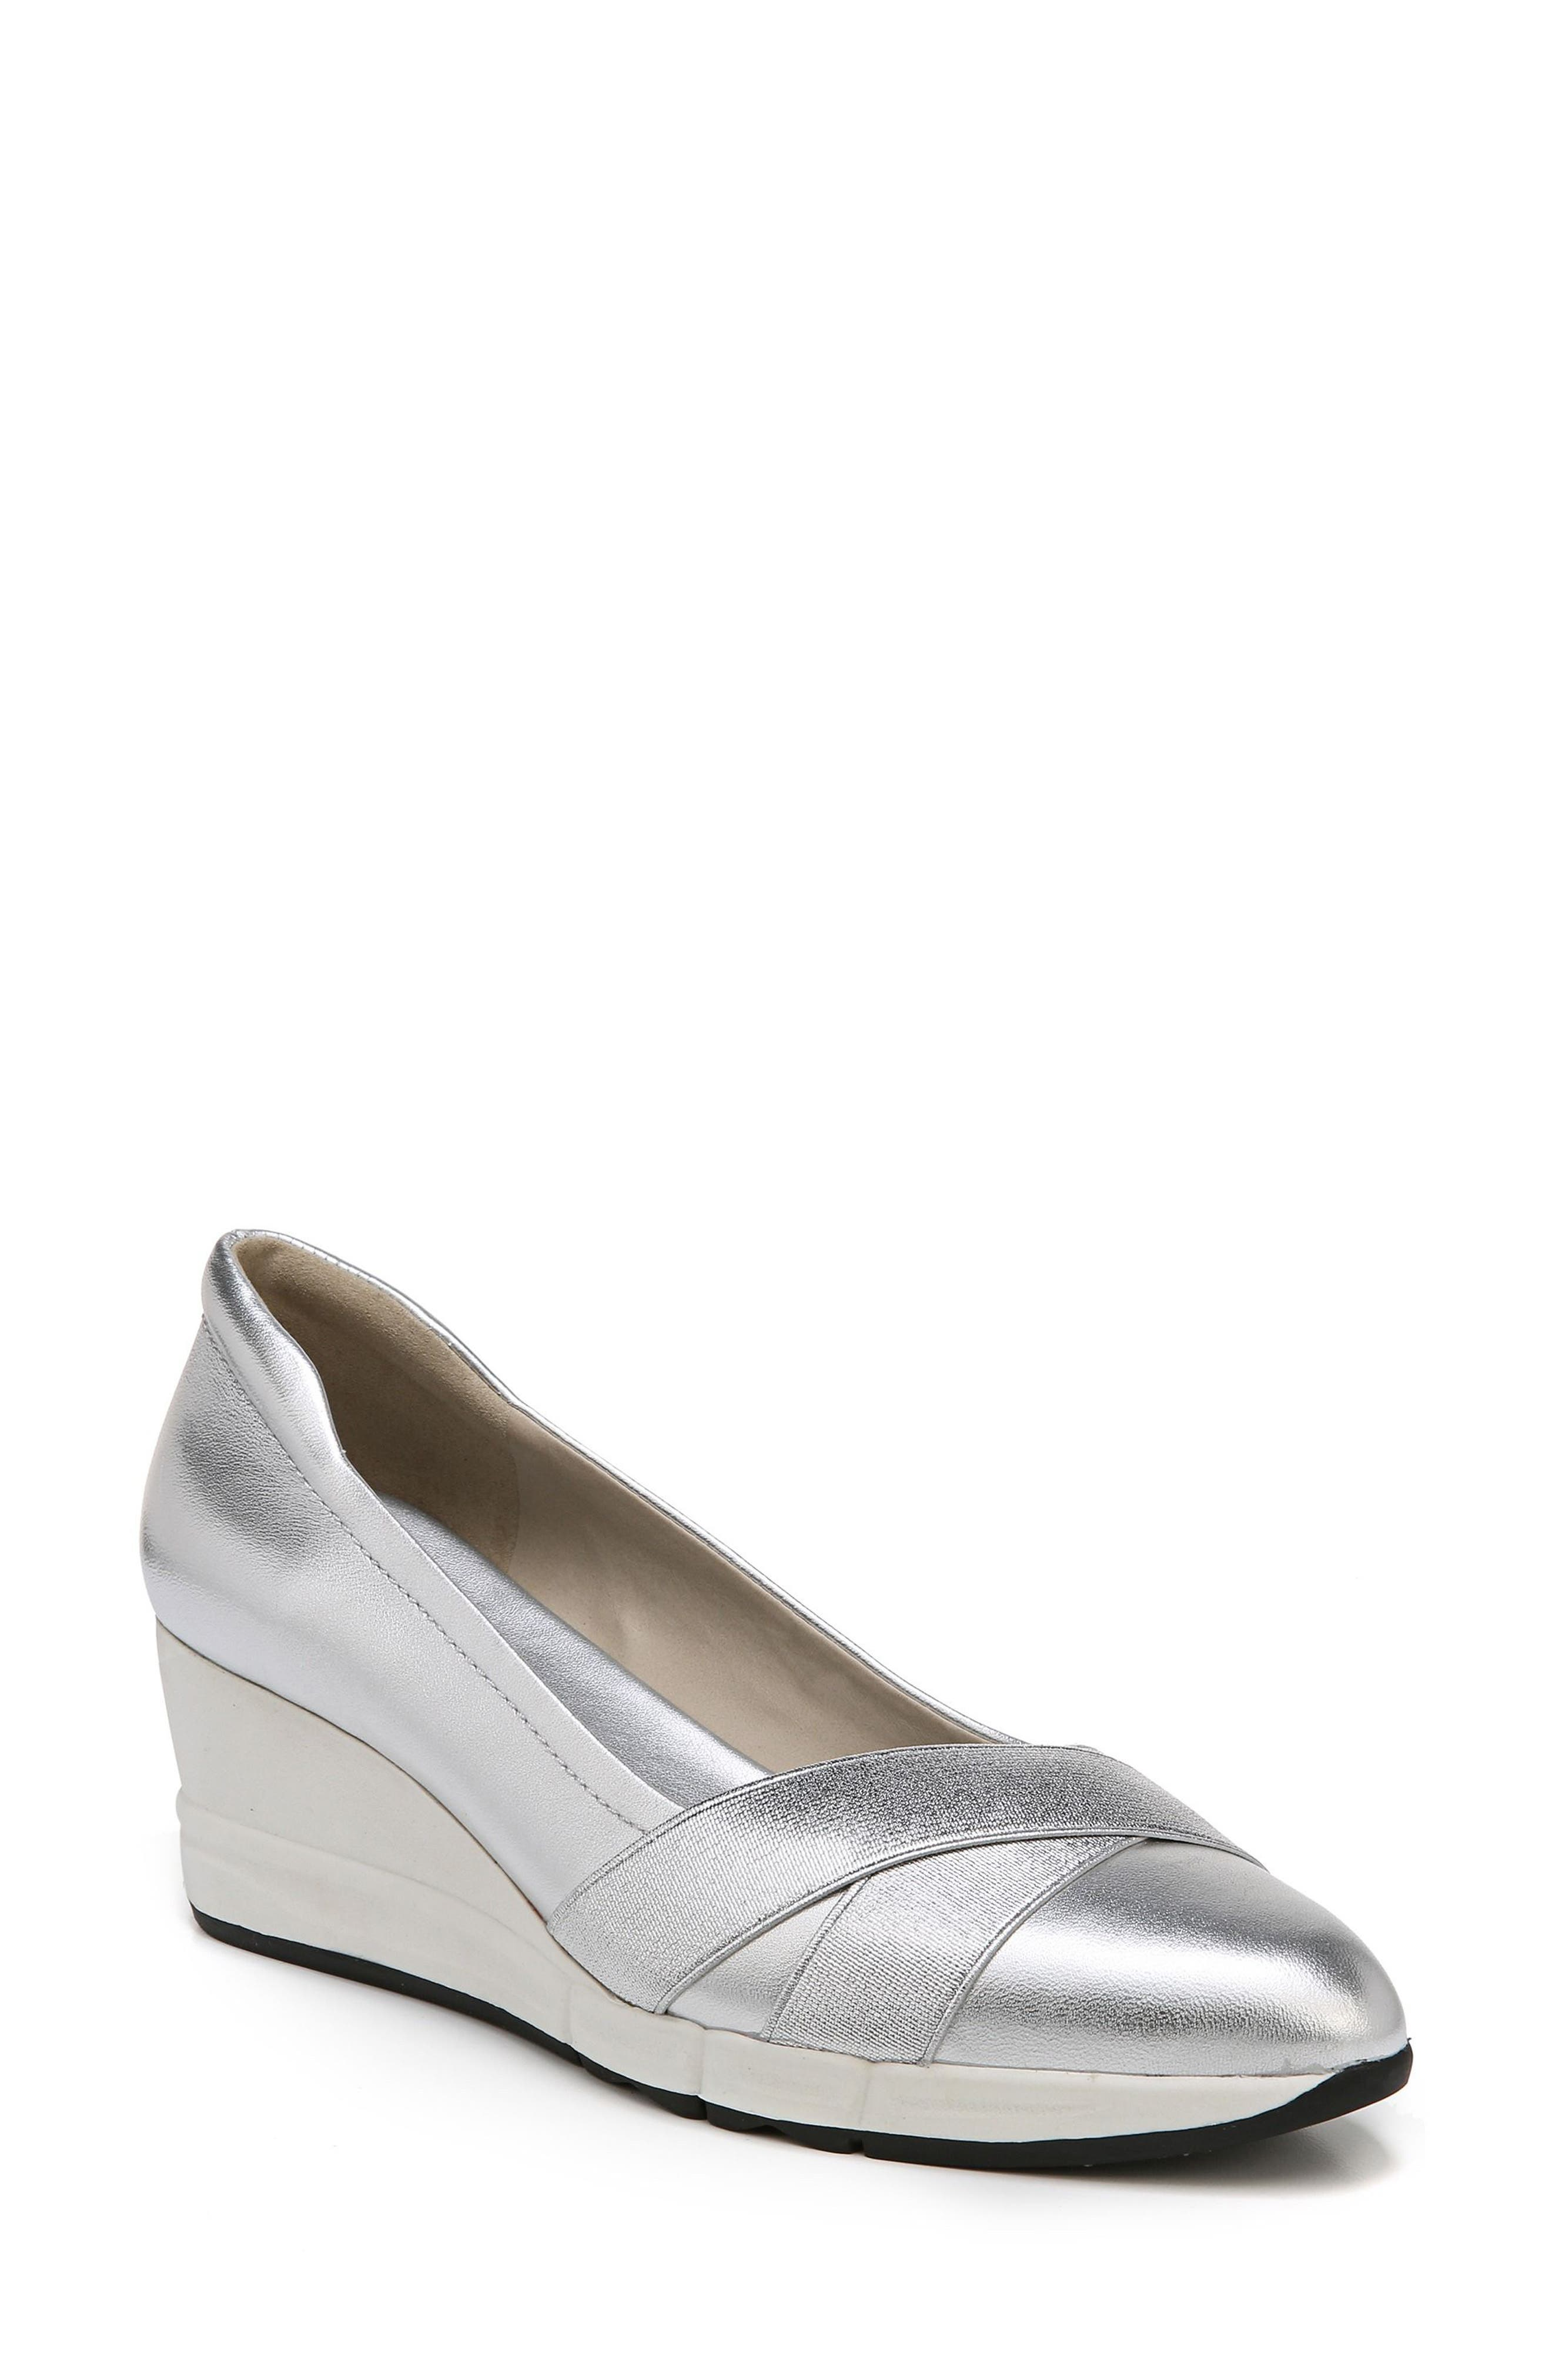 Harlyn Wedge Pump,                         Main,                         color, Silver Leather